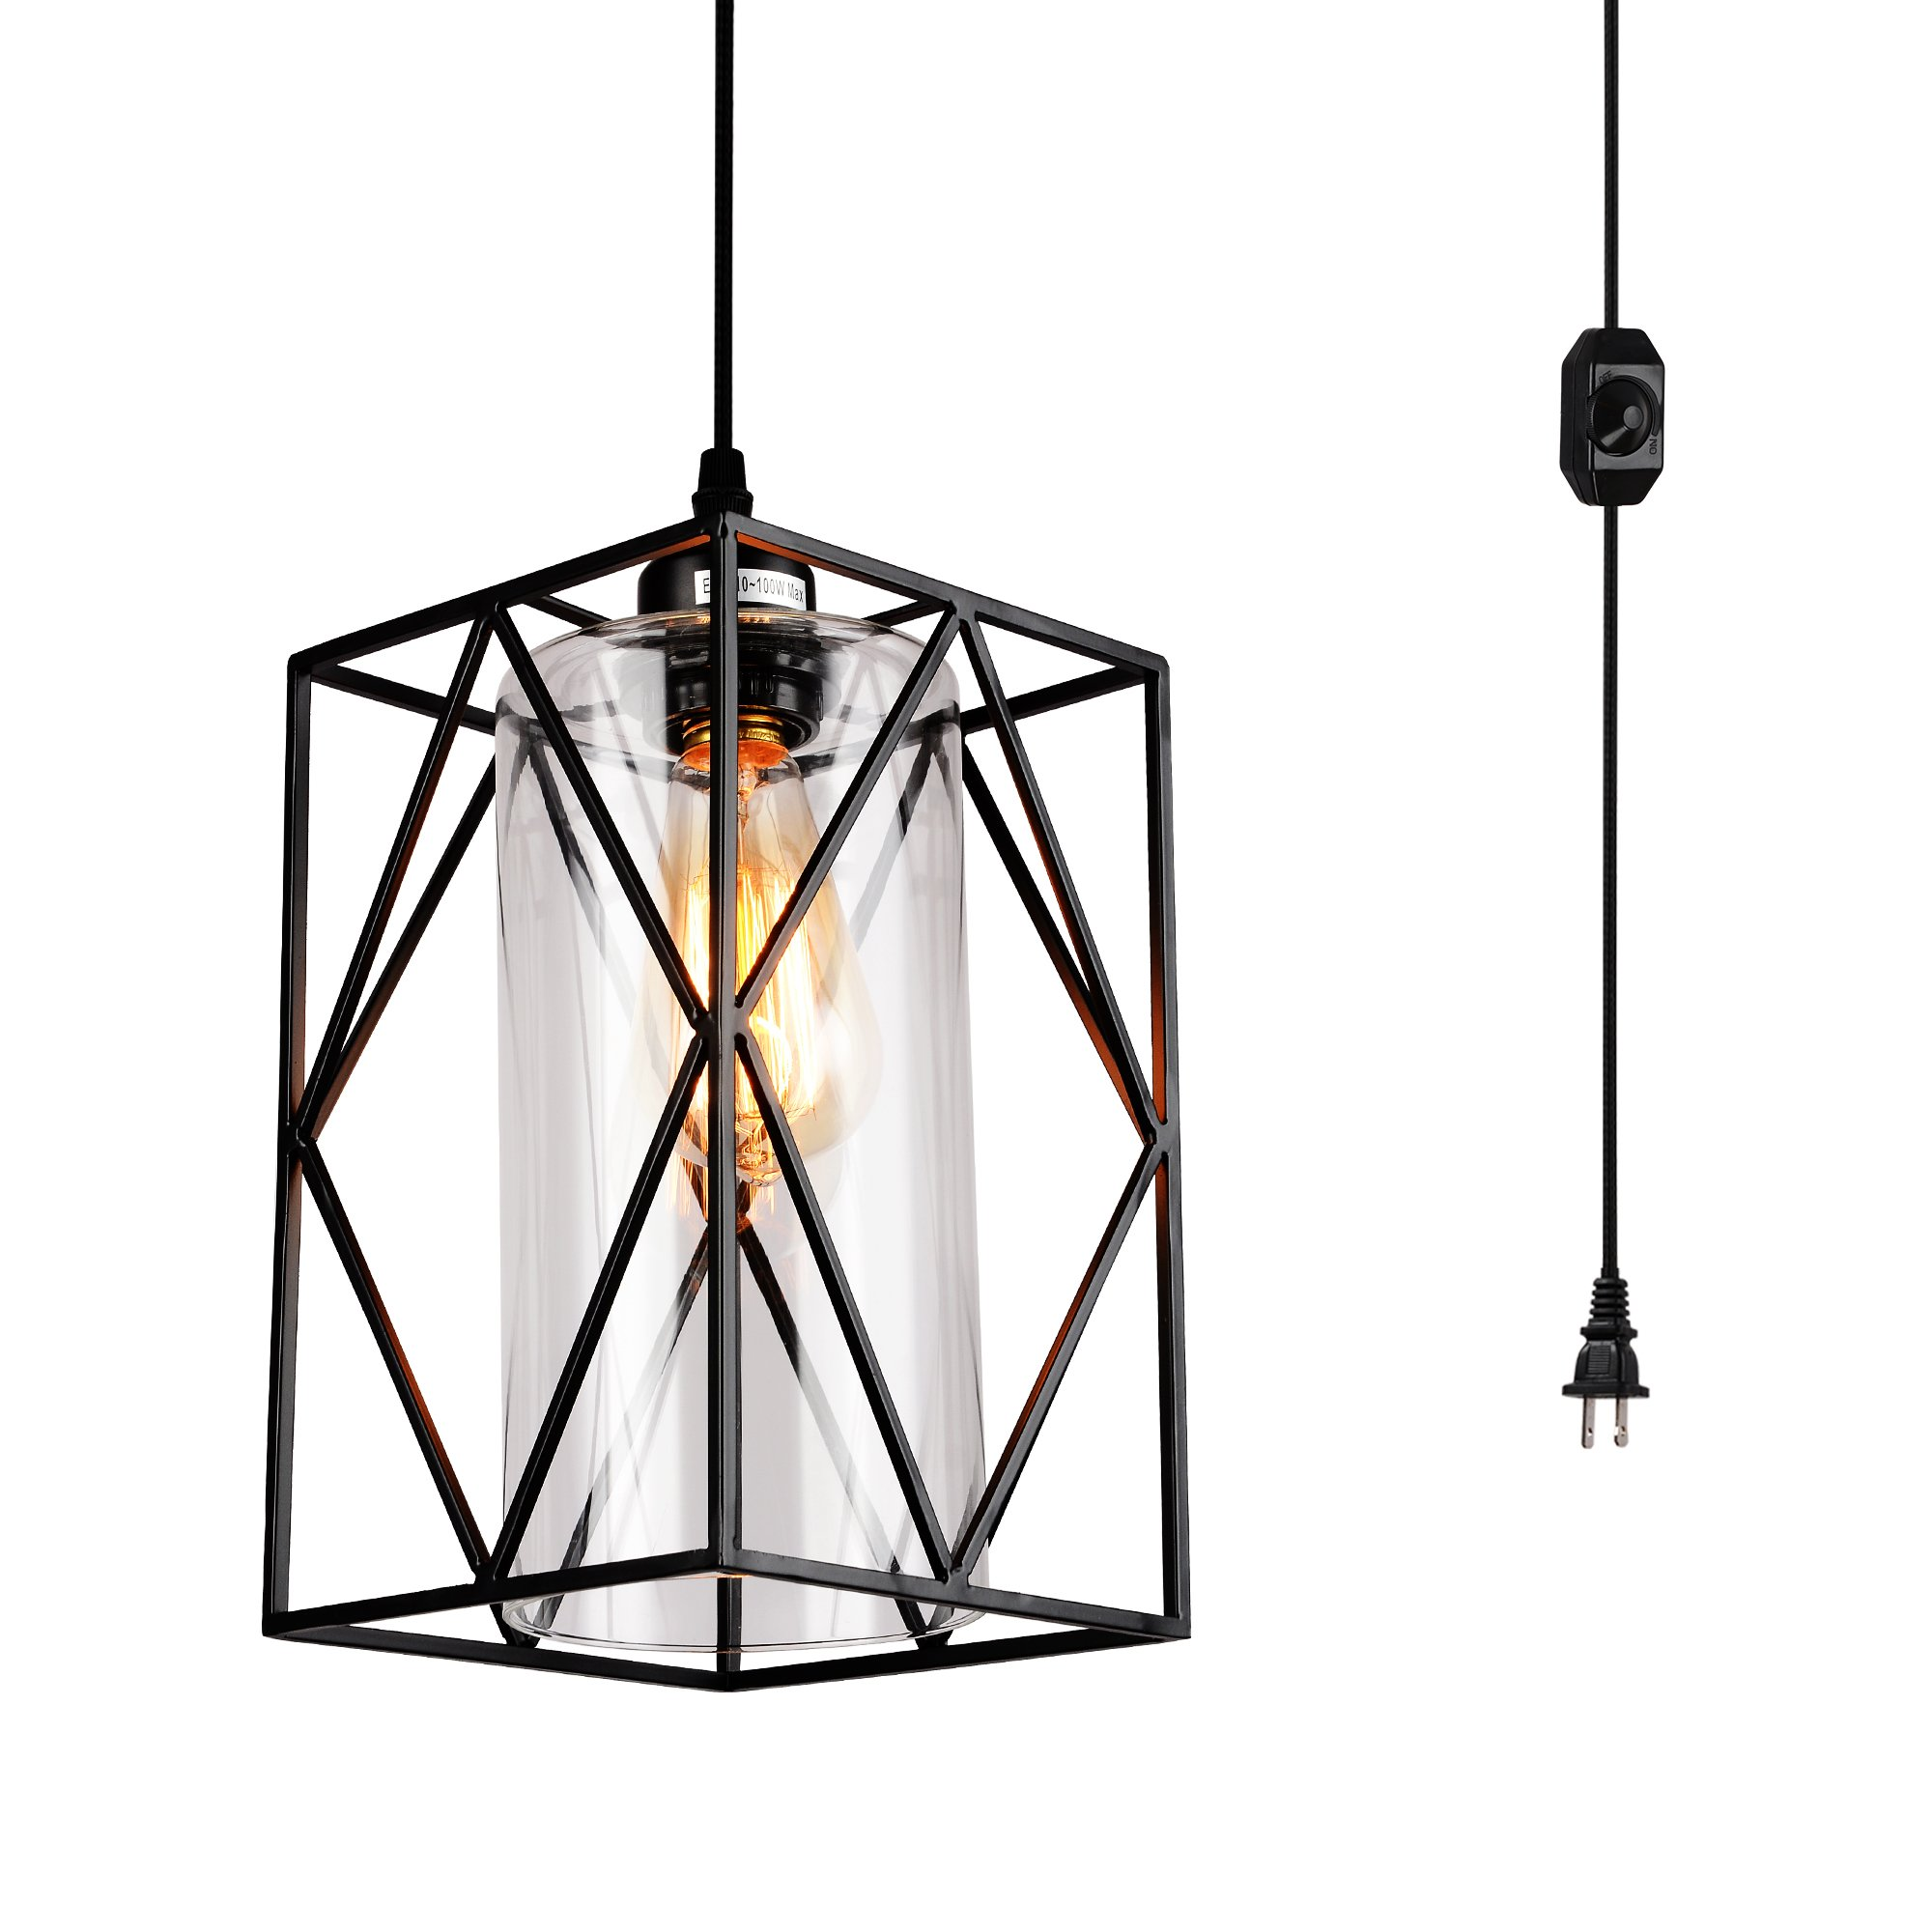 HMVPL Swag Lights with 16.4 Ft Plug in Cord and On/Off Dimmer Switch, New Transitional Hanging Pendant Lamps with Glass Lampshade for Dining Room, Bed Room